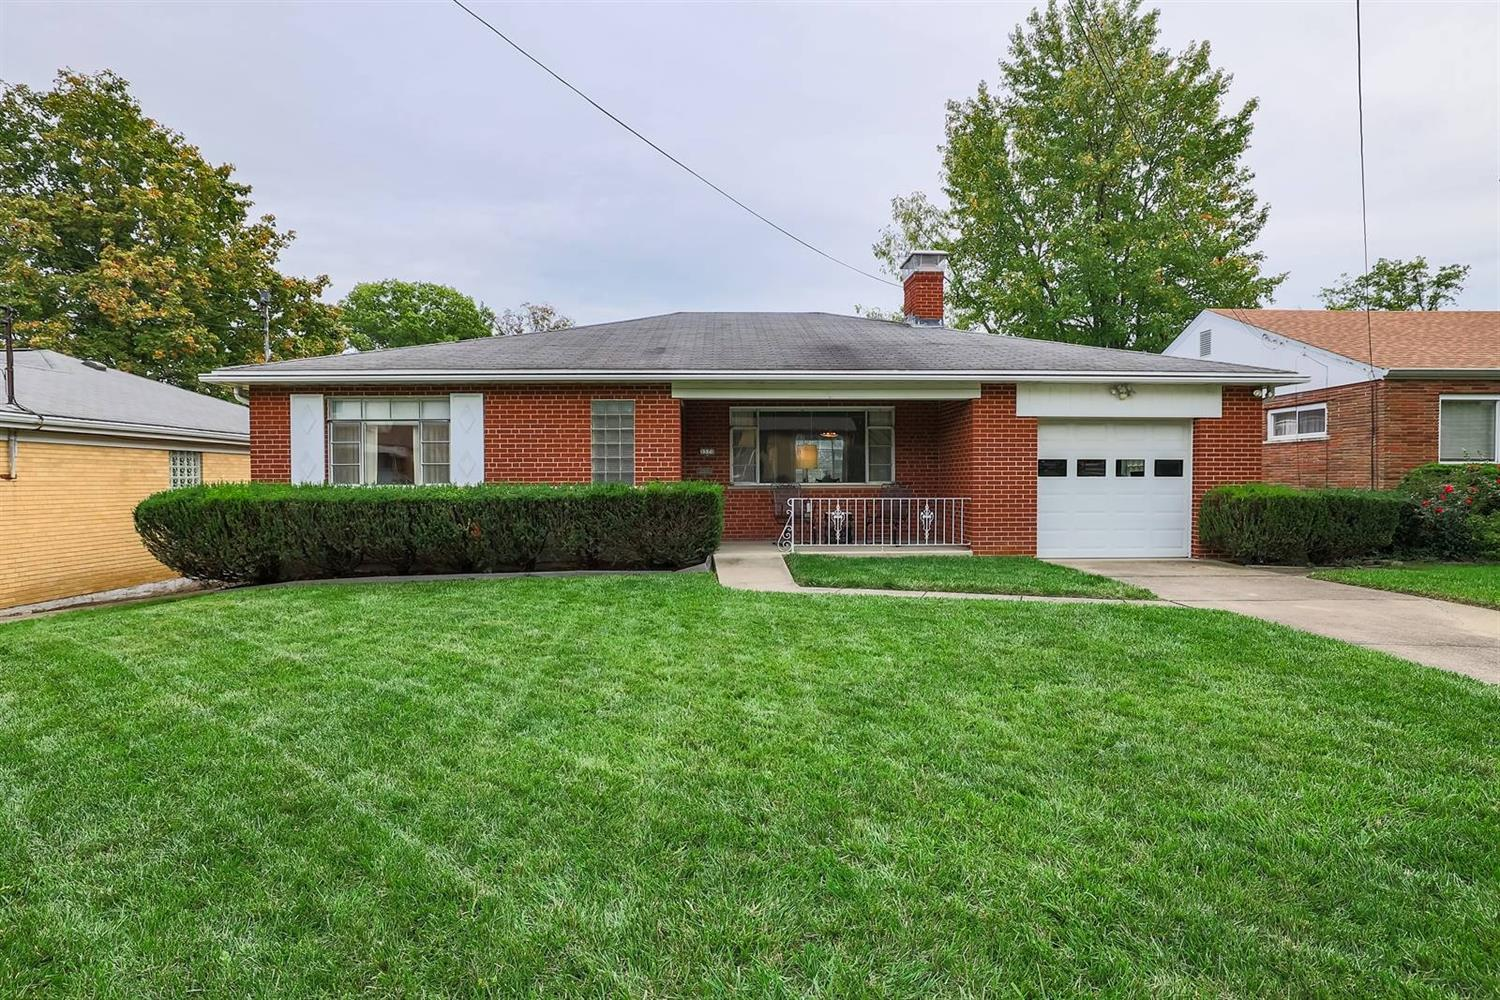 5570 Sunnywoods Lane, Green Twp, Ohio 45239, 3 Bedrooms Bedrooms, 11 Rooms Rooms,2 BathroomsBathrooms,Single Family Residence,For Sale,Sunnywoods,1718331